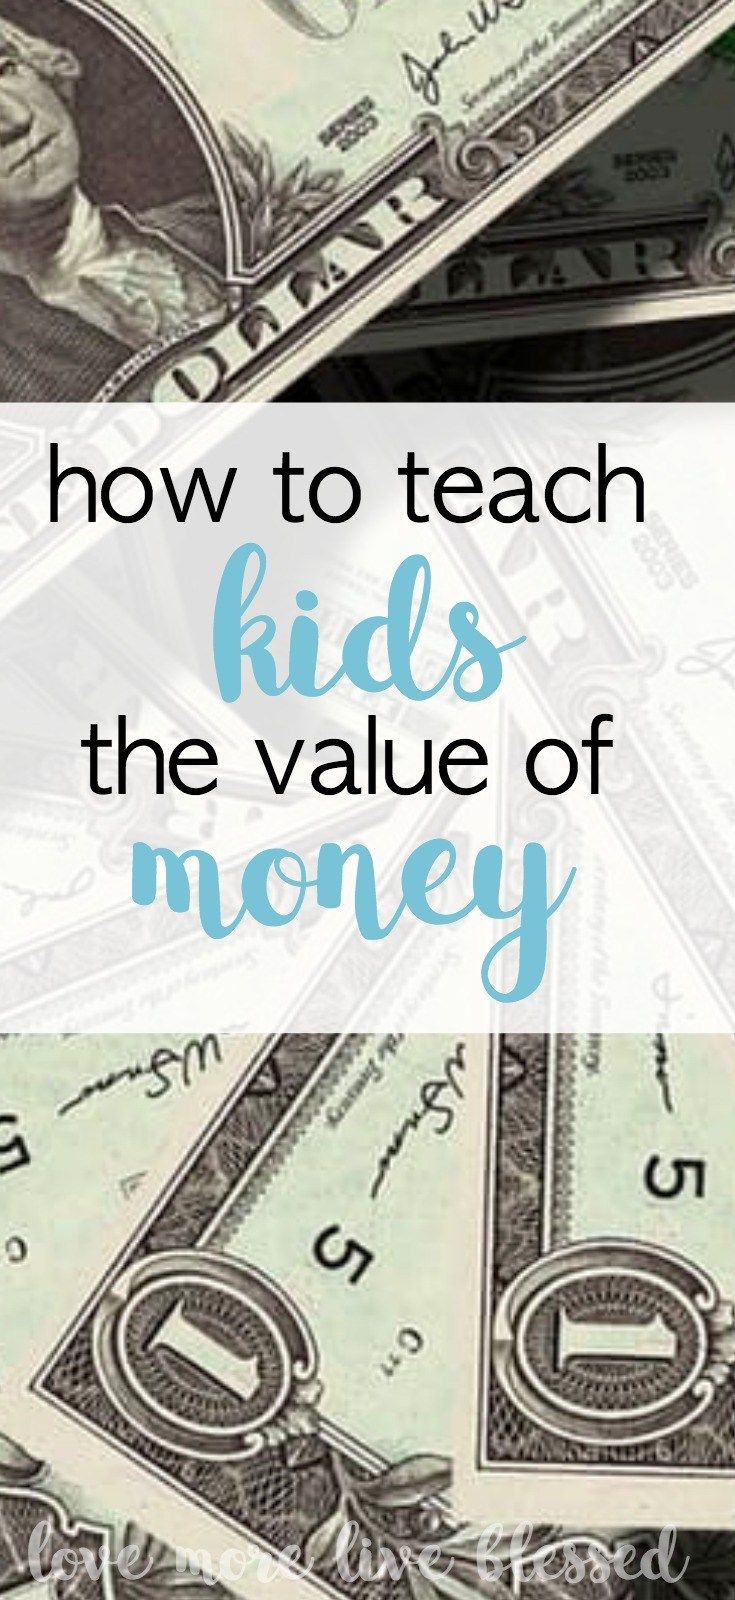 7 Lessons Your Kids Should Learn About Money - Lifehack